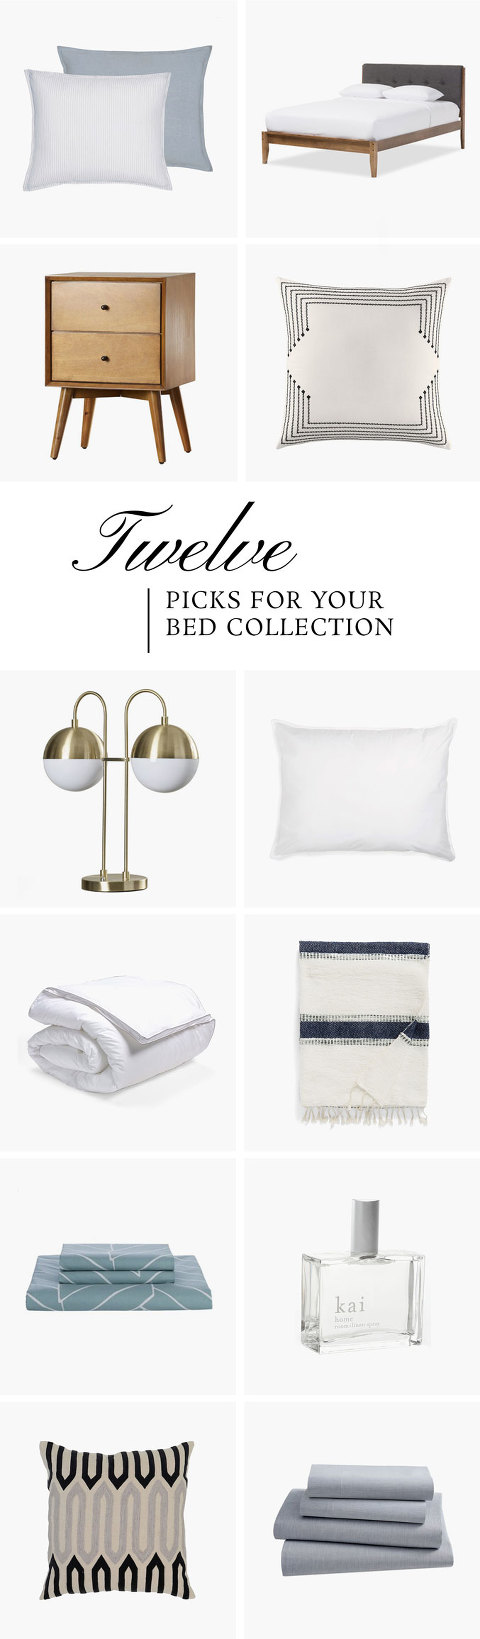 Everything You Need To Make Your Bed This Season | dreamgreendiy.com